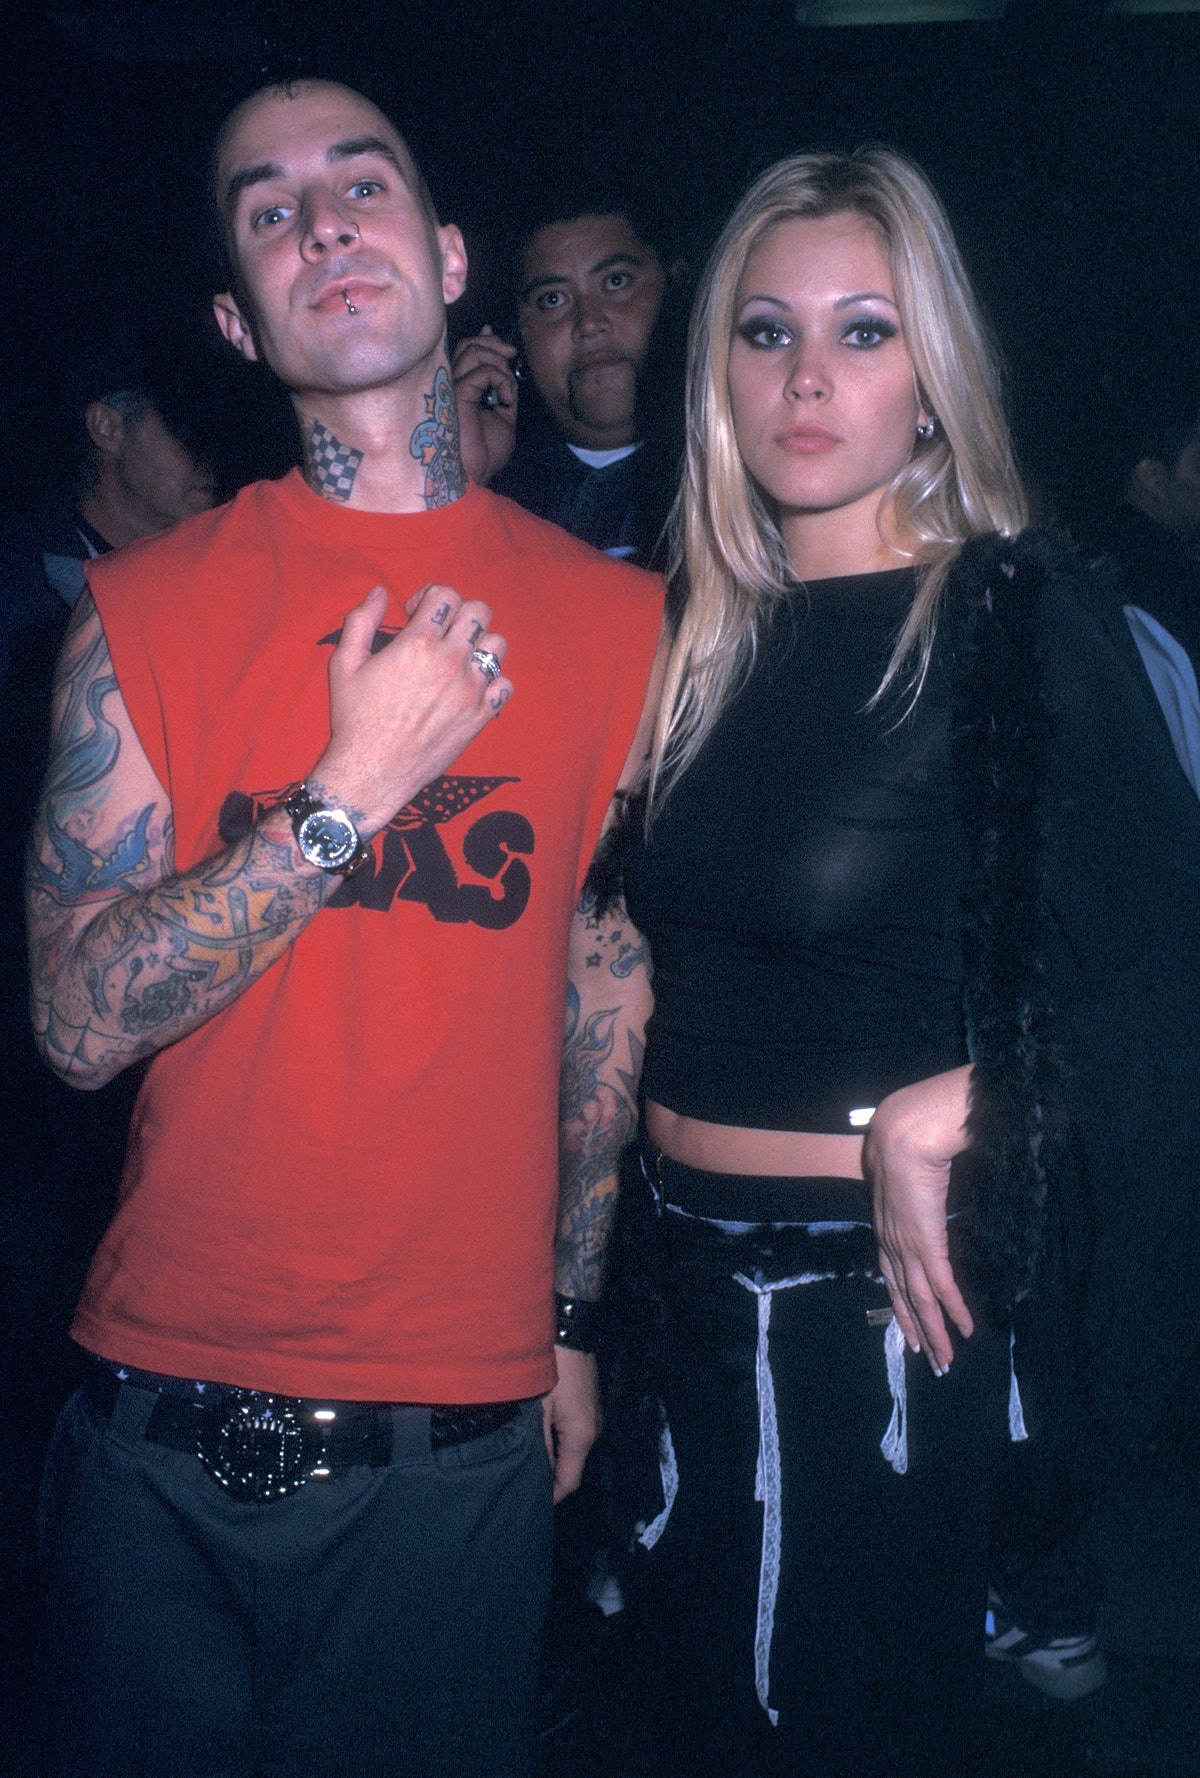 Travis Barker and Shanna Moakler used to look so happy together.